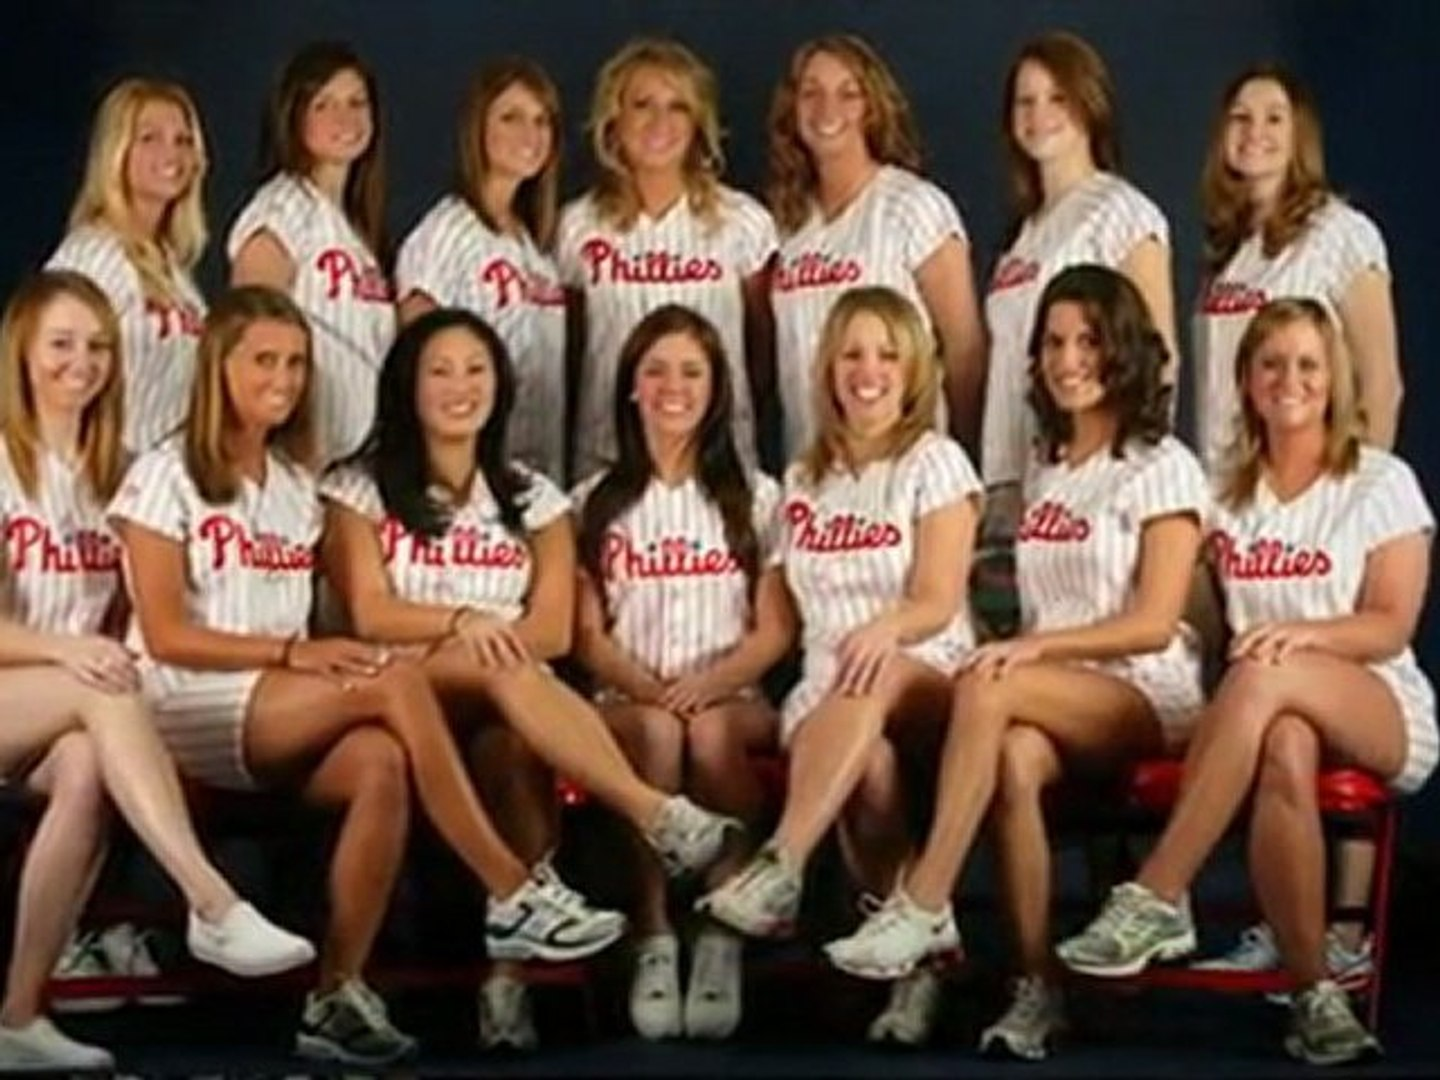 Fantasy Sports Philly Babes- Hot Sports Girls